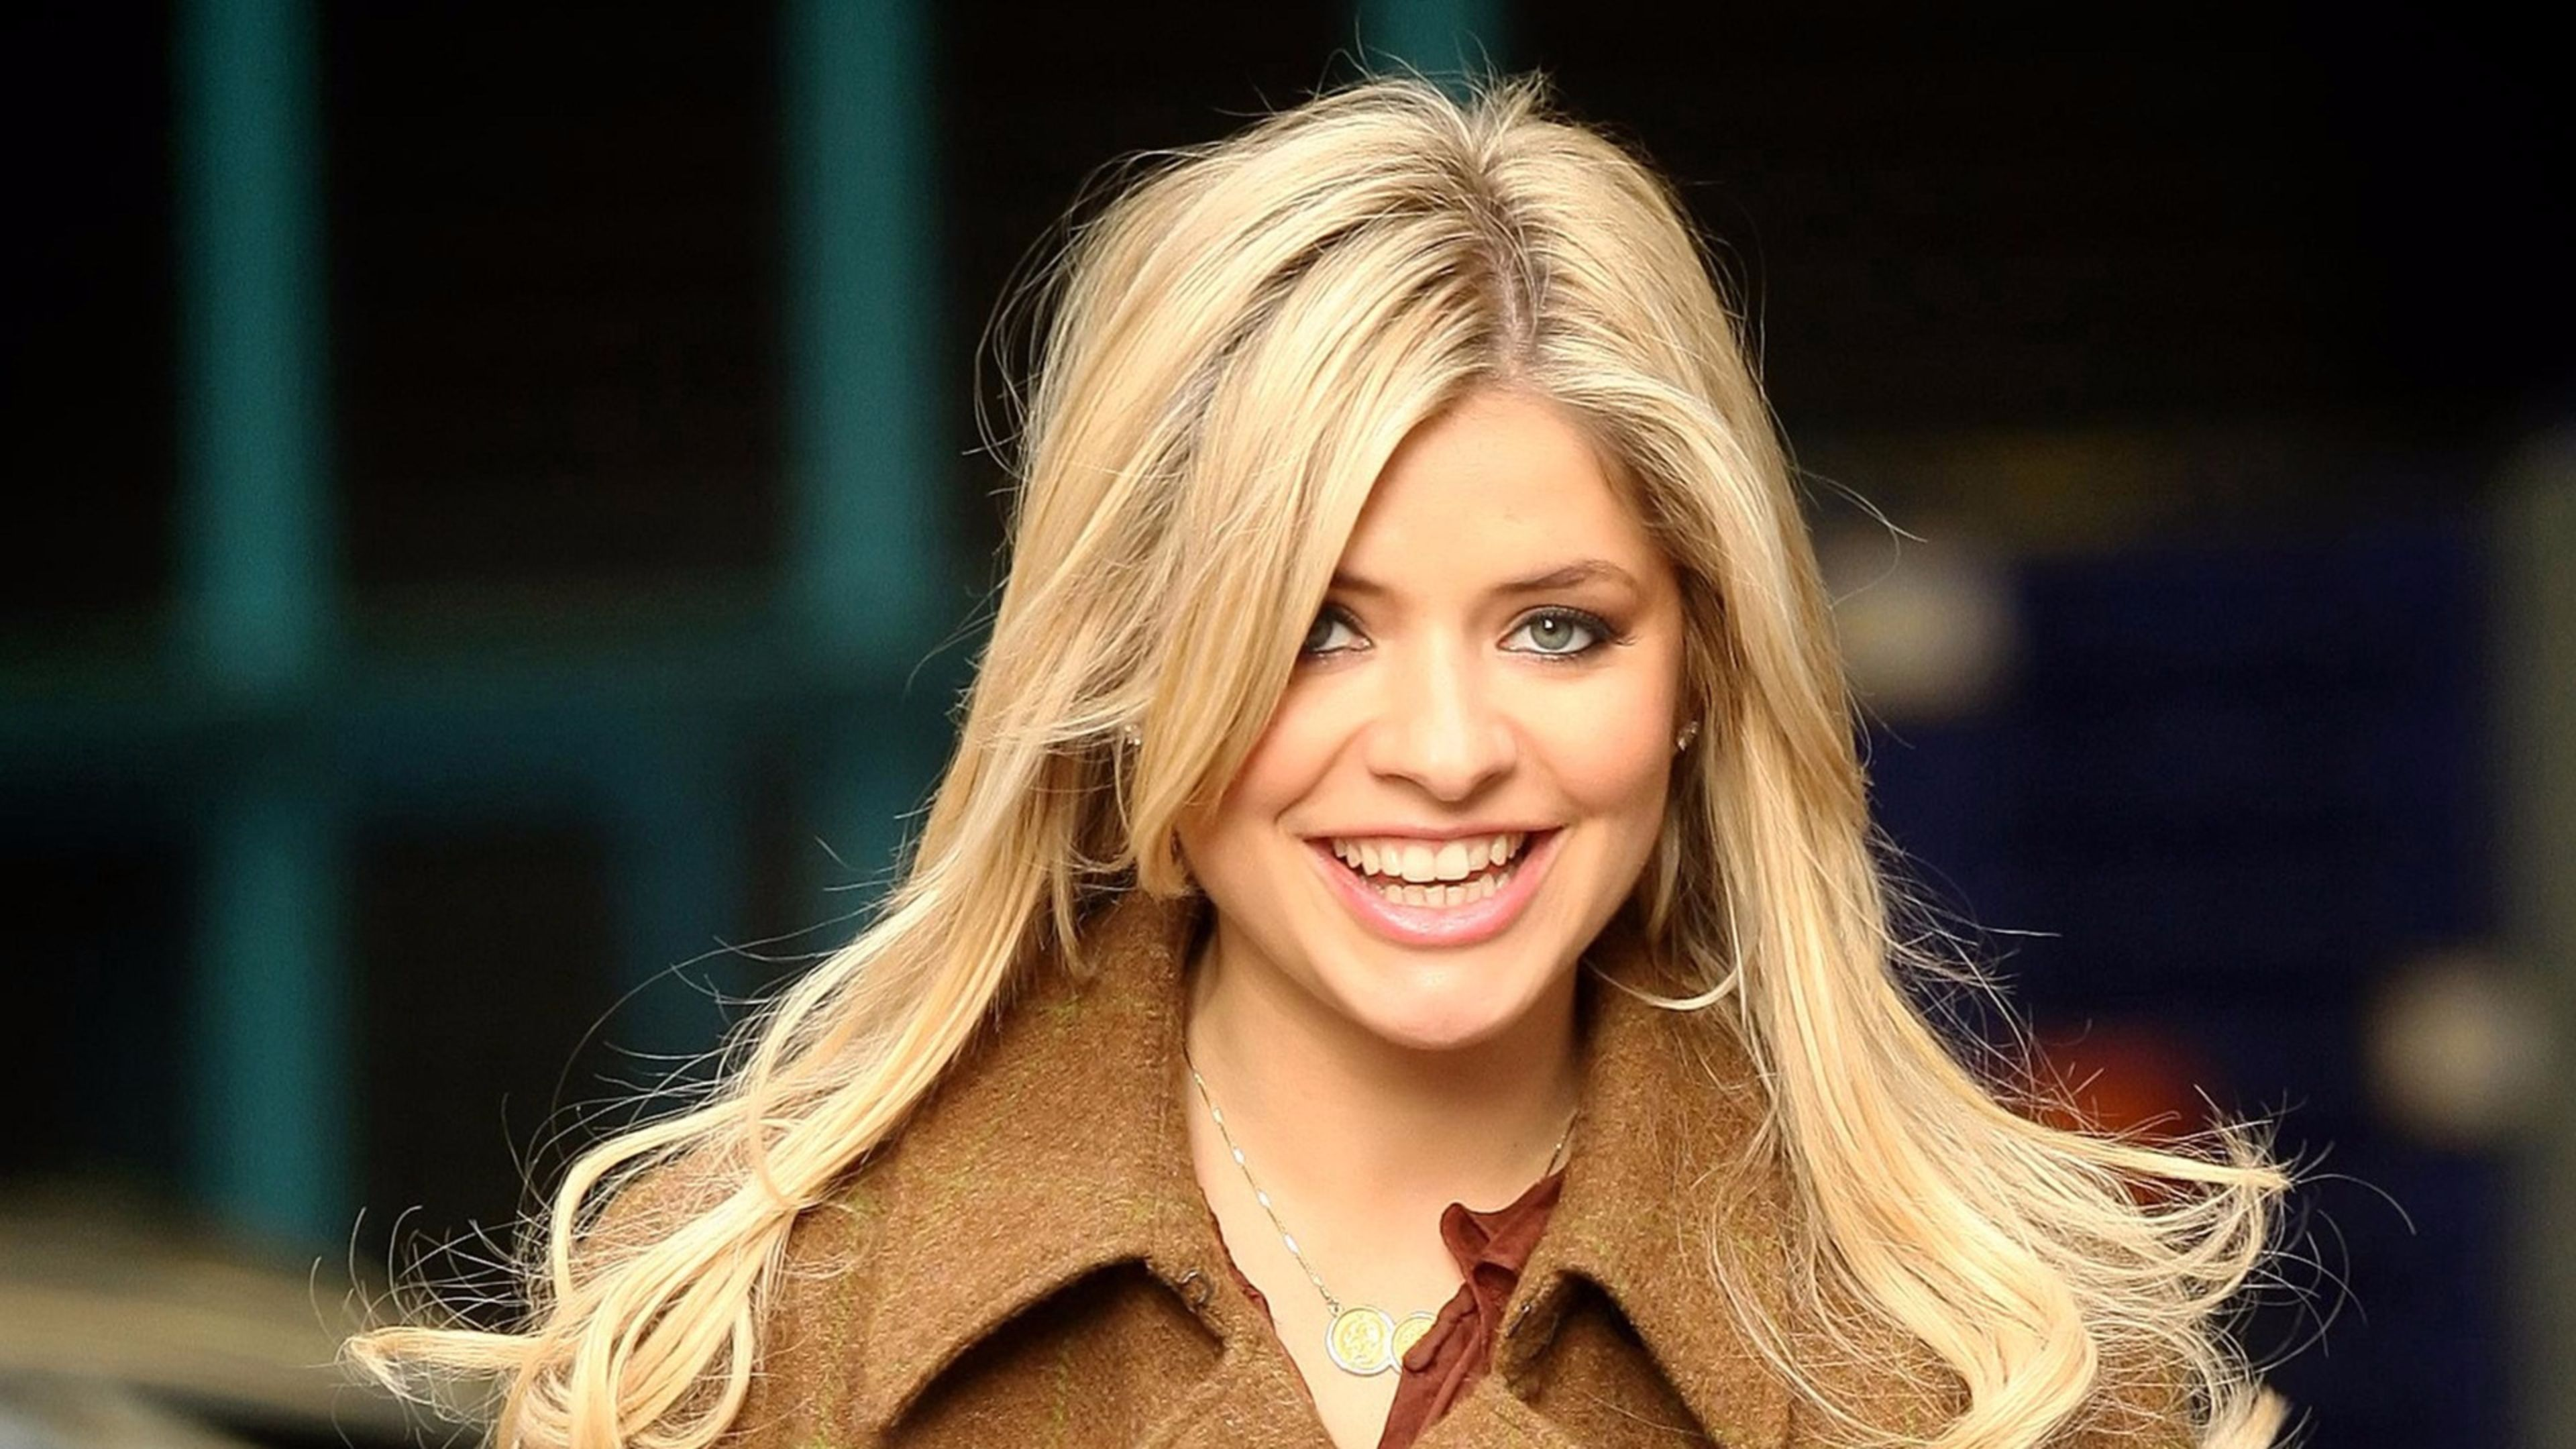 3840x2160 - Holly Willoughby Wallpapers 7